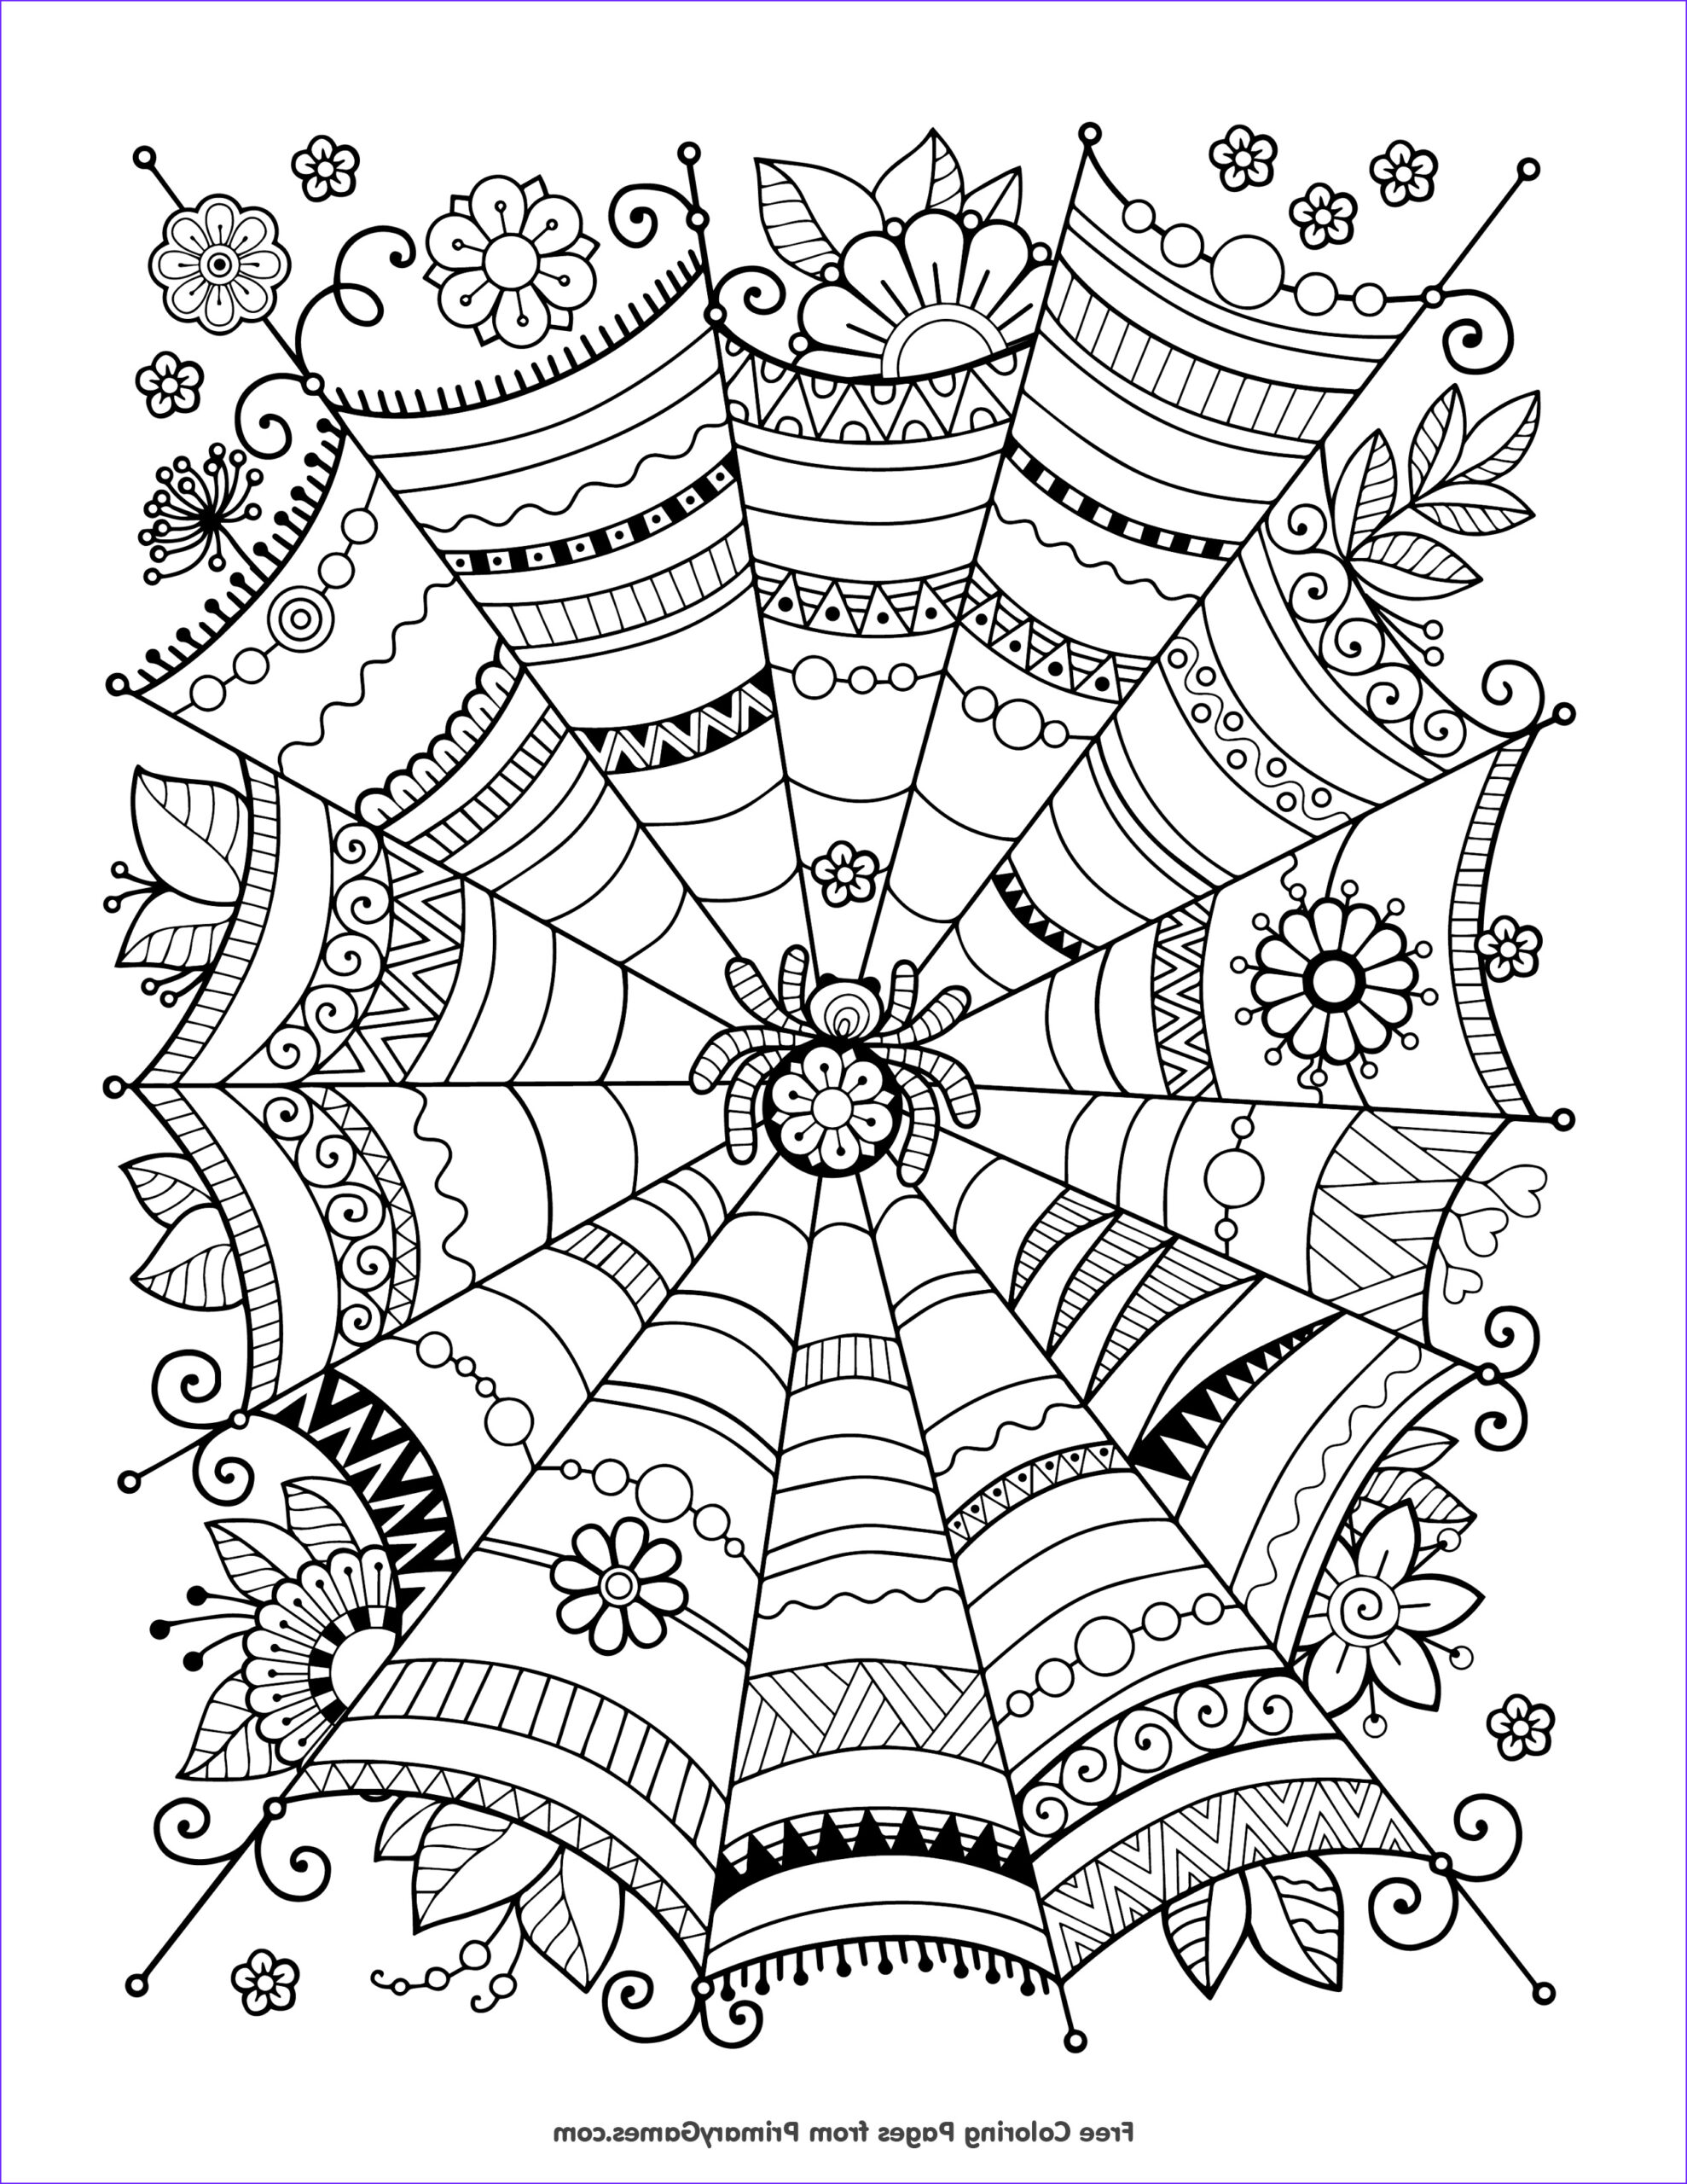 Halloween Coloring Pages for toddlers Awesome Photos Free Halloween Coloring Pages for Adults & Kids